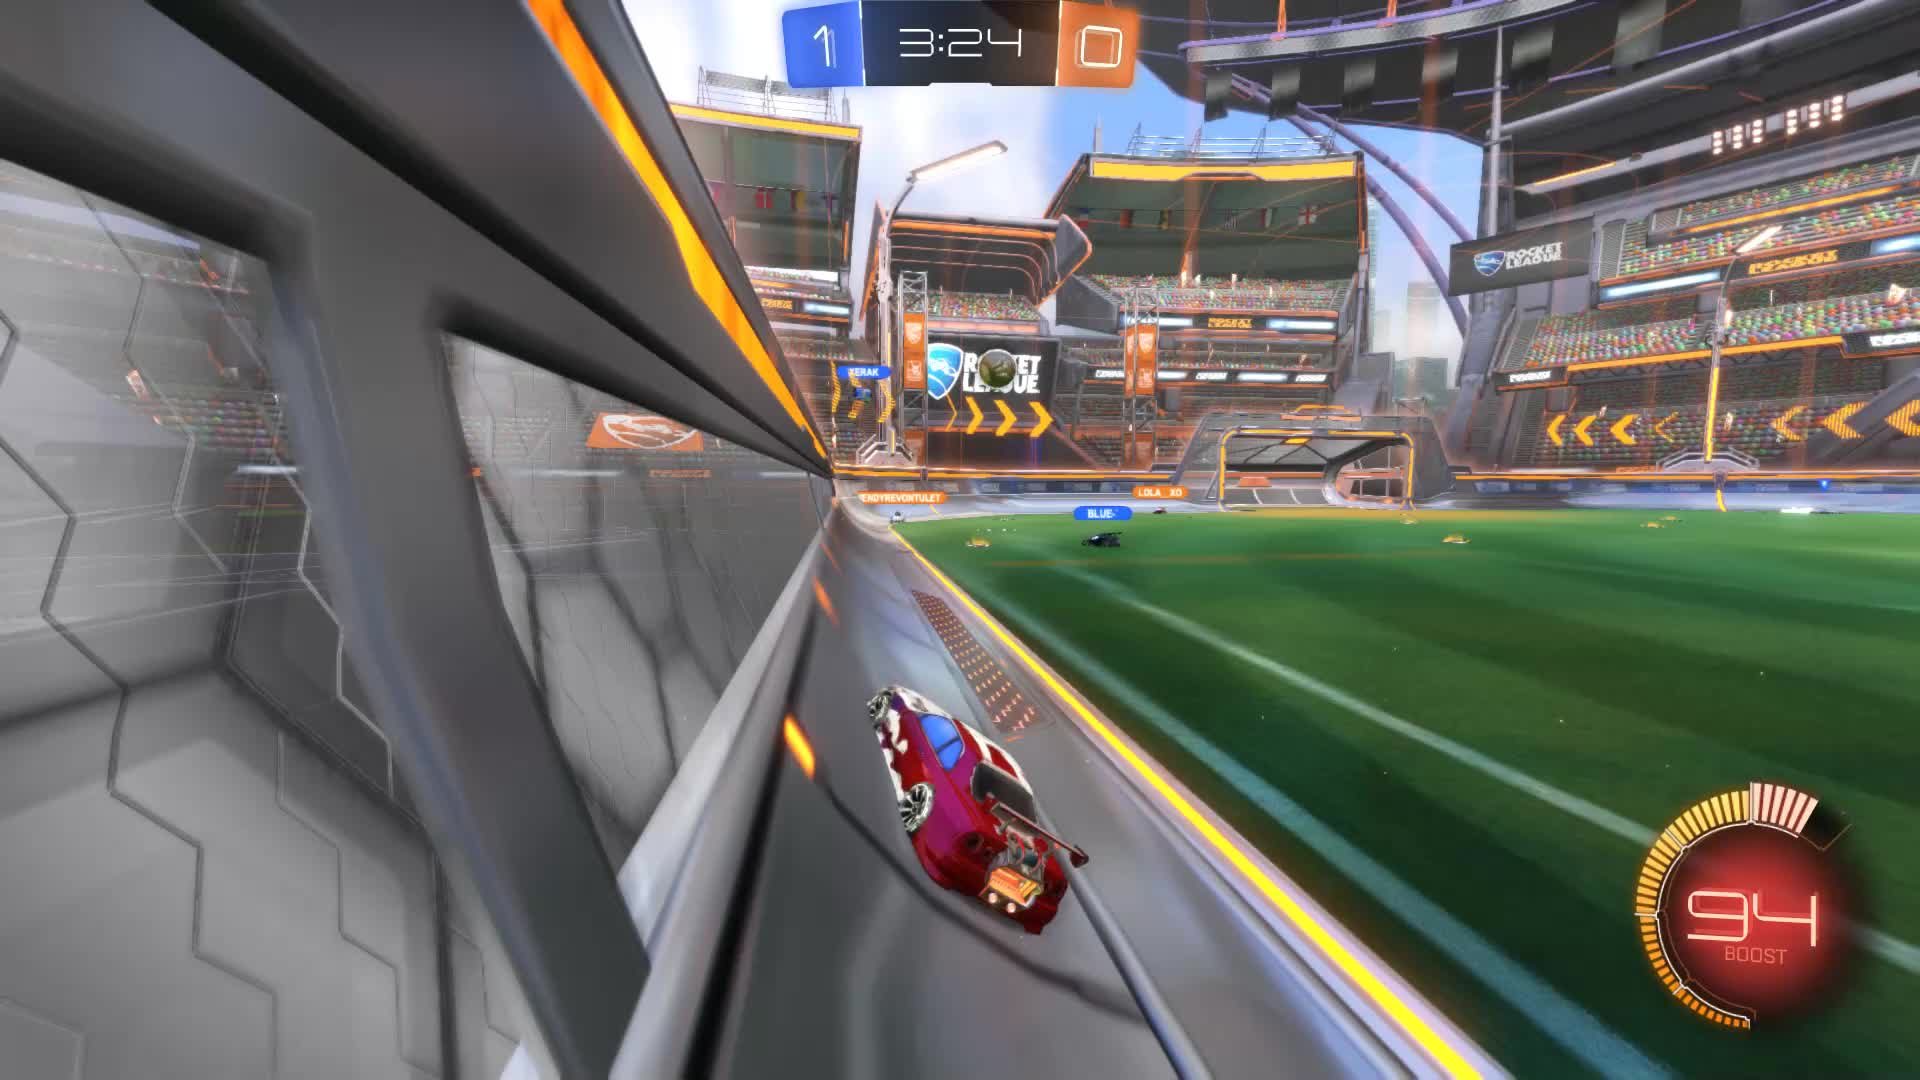 Gif Your Game, GifYourGame, Rocket League, RocketLeague, SCOTLAND FOREVER, Goal 2: SCOTLAND FOREVER GIFs